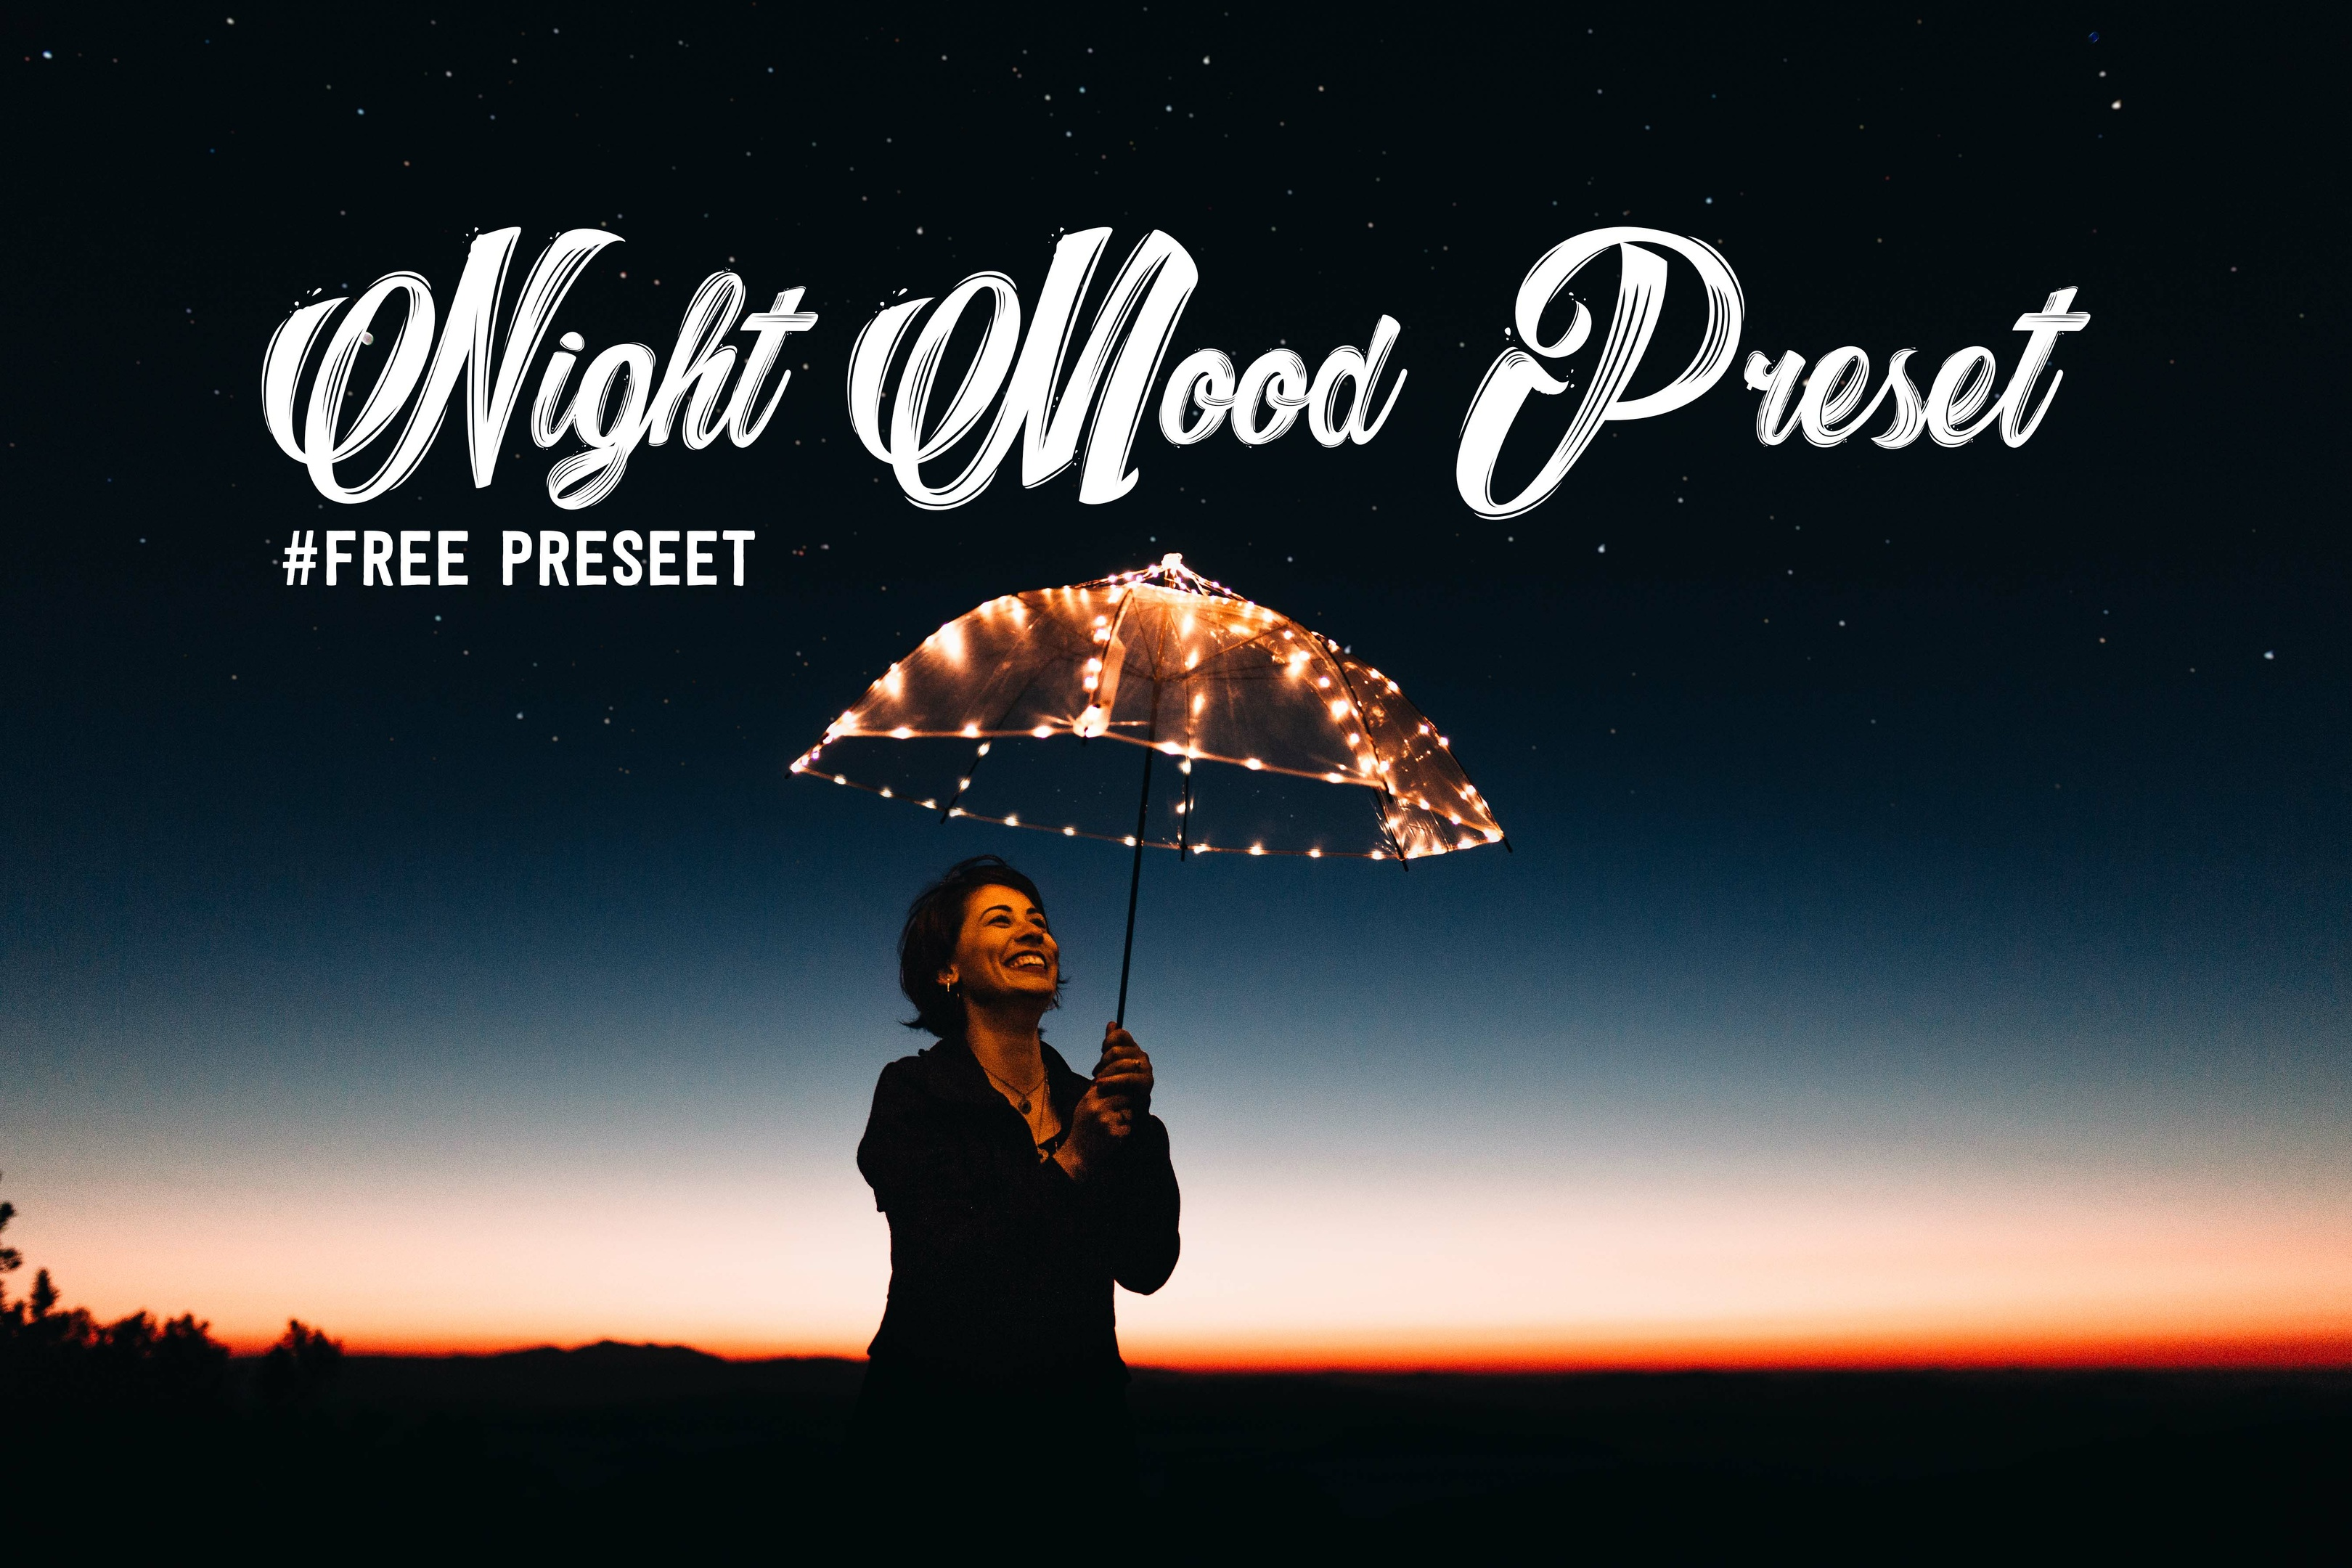 Night Mood FREE PRESET